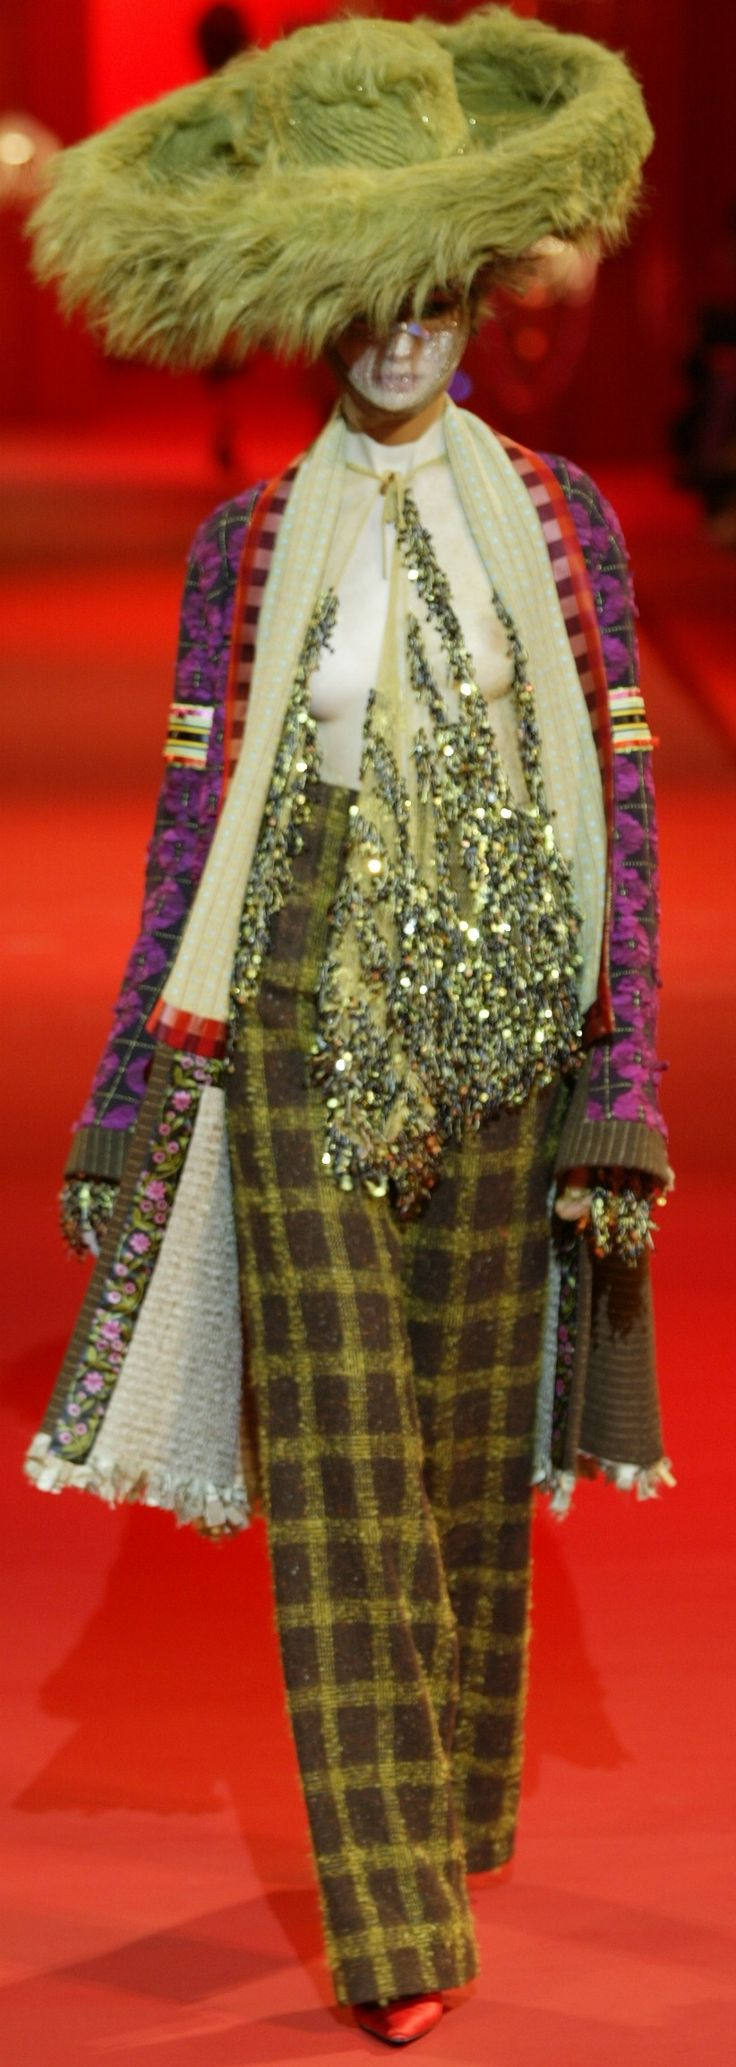 ~Christian Lacroix Haute Couture Fall-Winter 2002 | The House of Beccaria#